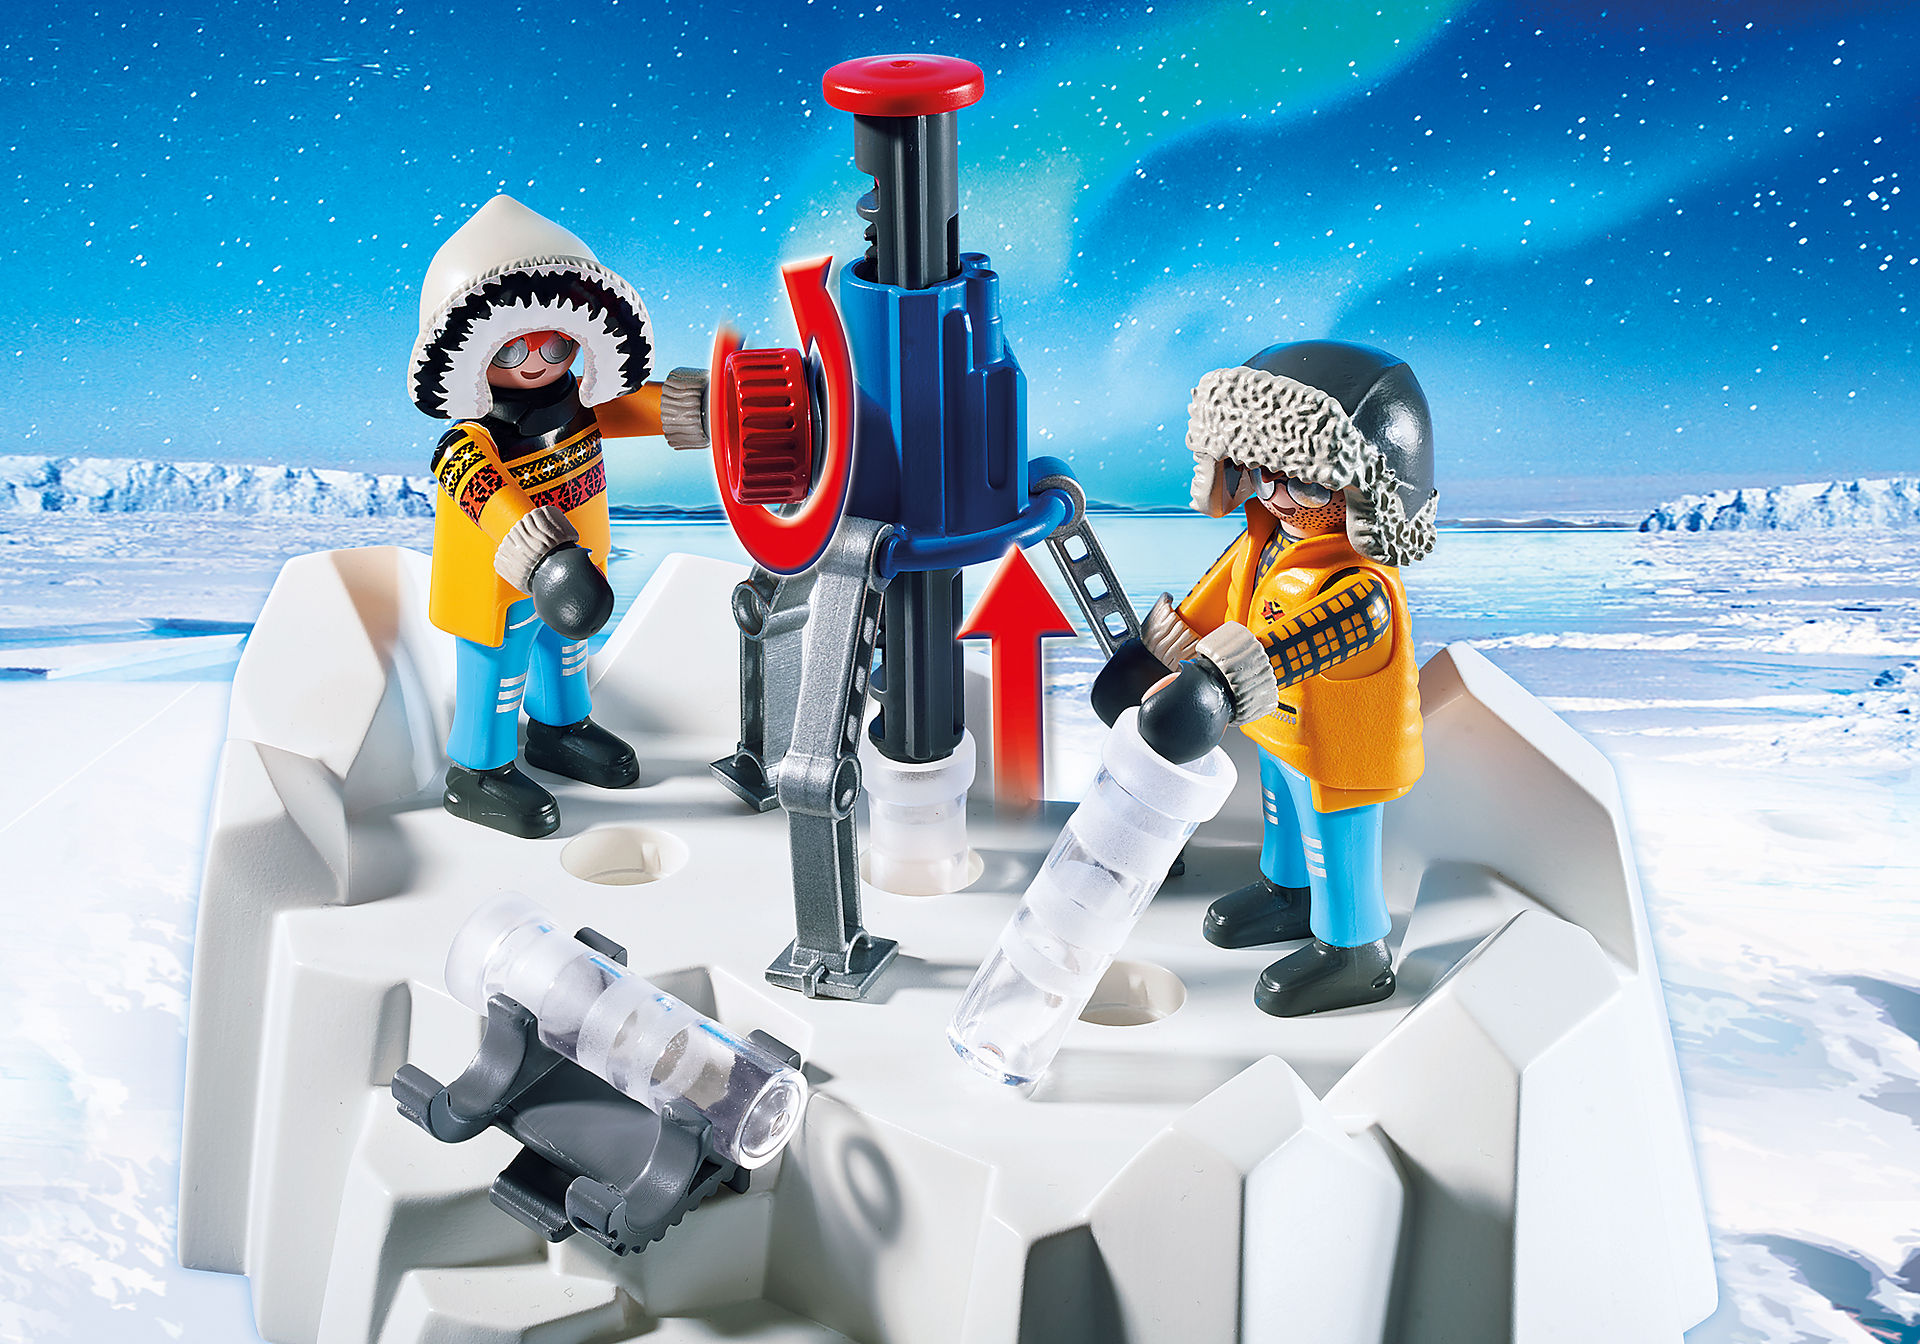 http://media.playmobil.com/i/playmobil/9056_product_extra1/Arctic Explorers with Polar Bears